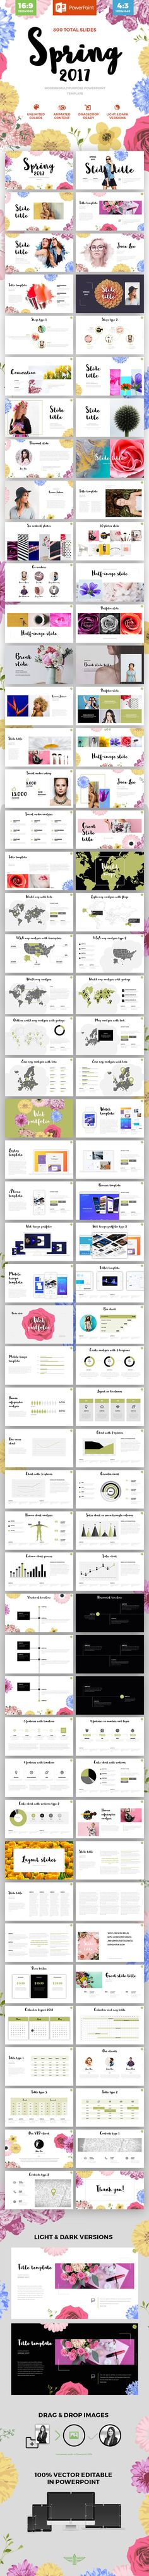 "Buy Spring 2017 - Powerpoint template by bagd on GraphicRiver. About ""Spring is a multipurpose modern powerpoint template perfect for your business tasks or personal use. Powerpoint Themes, Creative Powerpoint, Powerpoint Presentation Templates, Web Design, Book Design, Layout Design, Layout Template, Keynote Template, Photo Images"